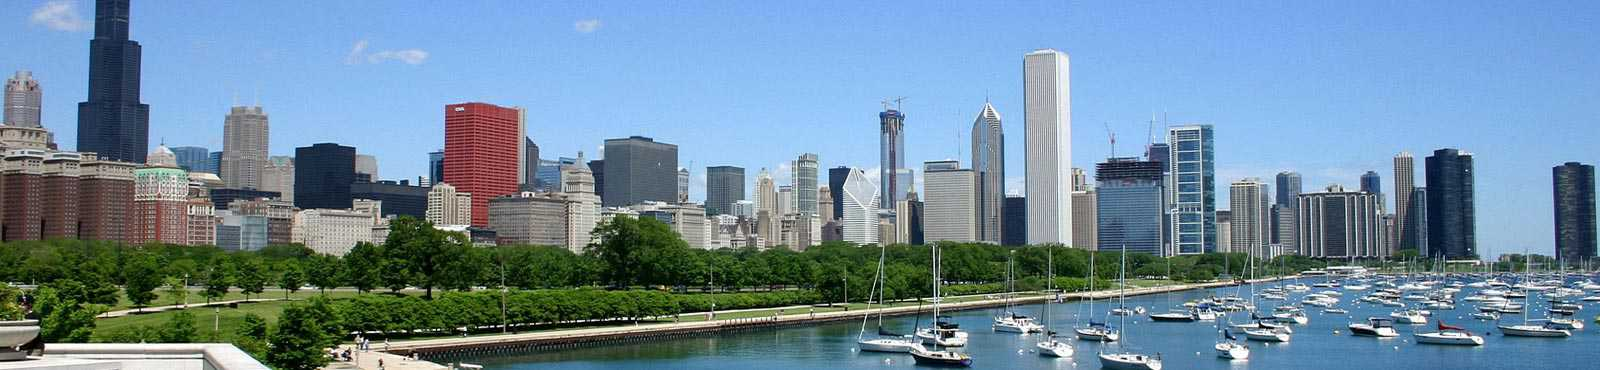 Hospitalist Jobs In Chicago  Find Your Next Chicago Job. Ms Office Classes Online Cheap Car Rentals Uk. Nursing Schools In The Midwest. How Common Is Erectile Dysfunction. Philadelphia Advertising Agencies. Security Companies In Seattle. Fiber Optic Availability Toronto Health Care. Online Phone Answering Service. Moving Services Jacksonville Fl